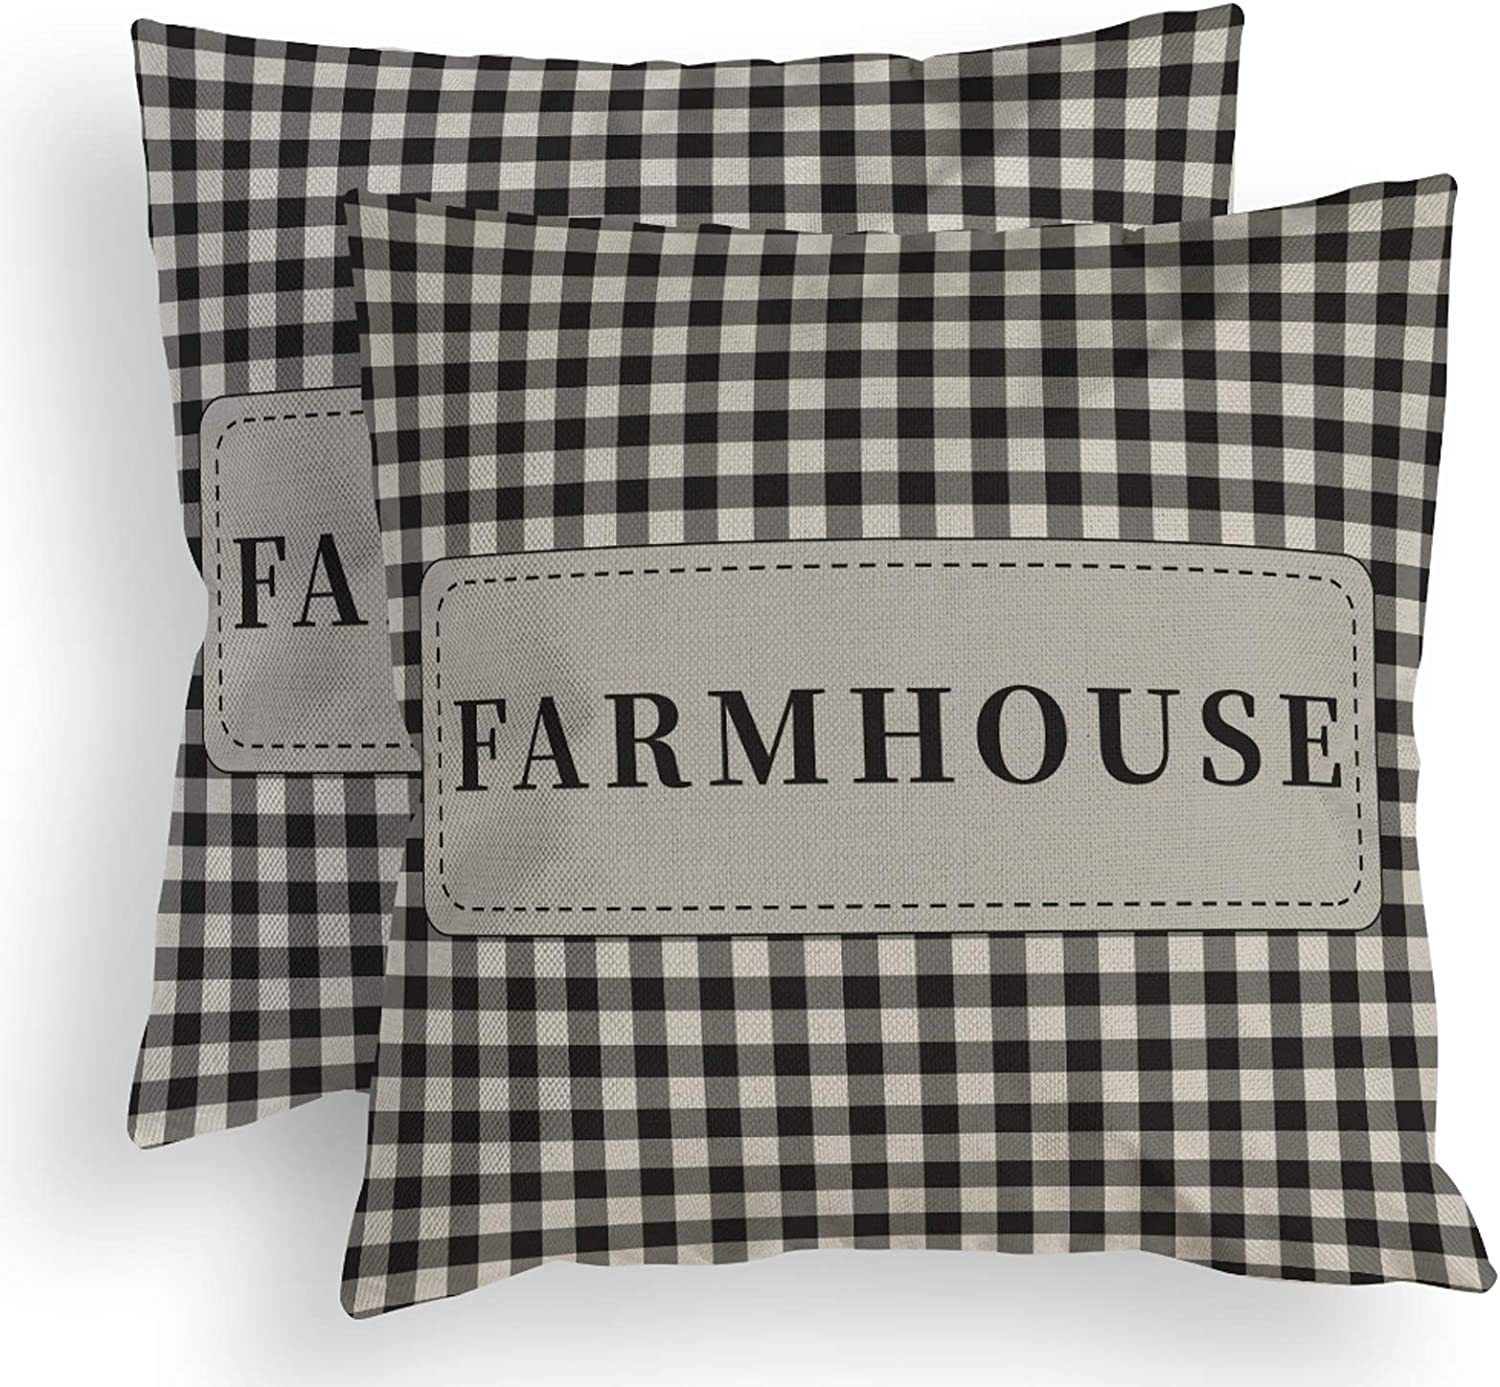 ROMAHOME Throw Pillow Covers Set of 2 Farmhouse Americana Primitive Classic Country Geometric Black and Grey White Checked Plaids Patriotic Decorative Pillow Cover for Home Decor Square 18x18 Inches